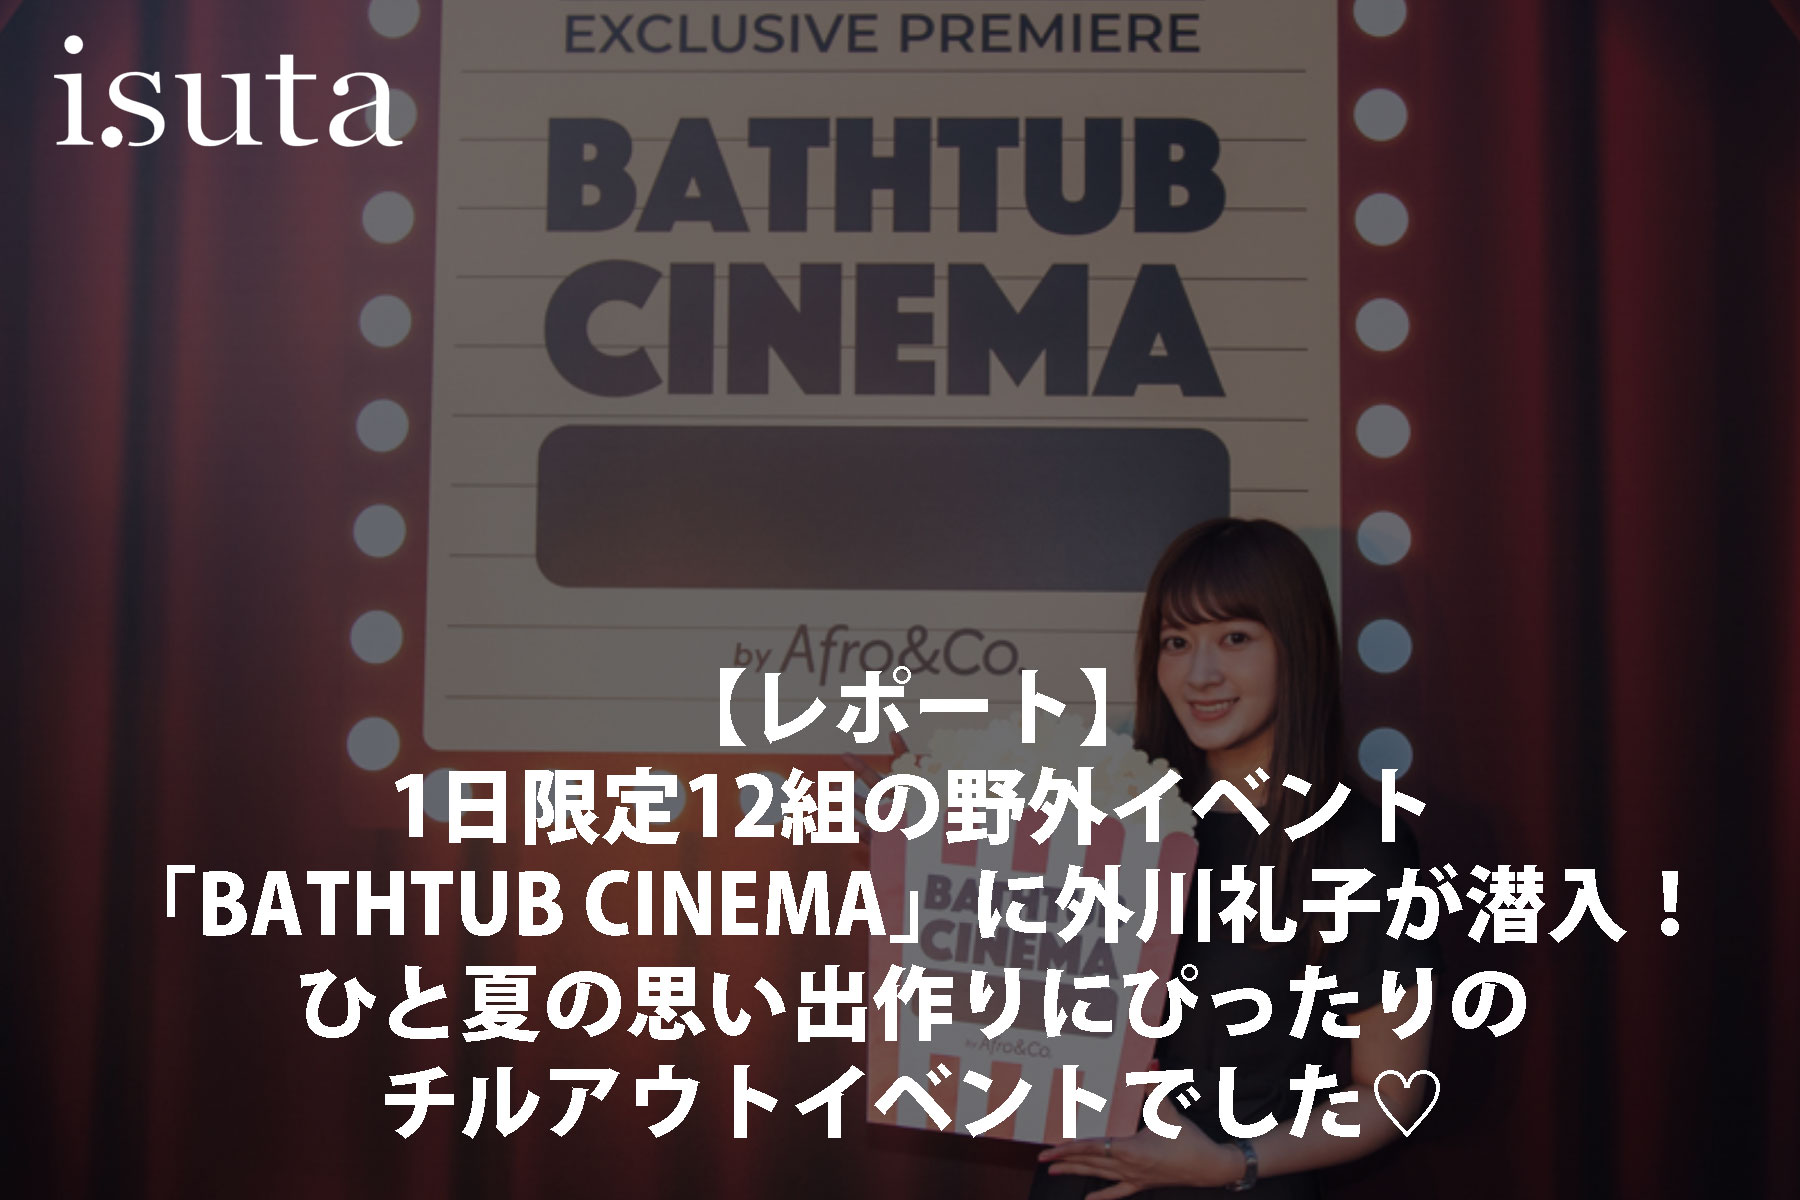 media_bathtubcinema_isuta